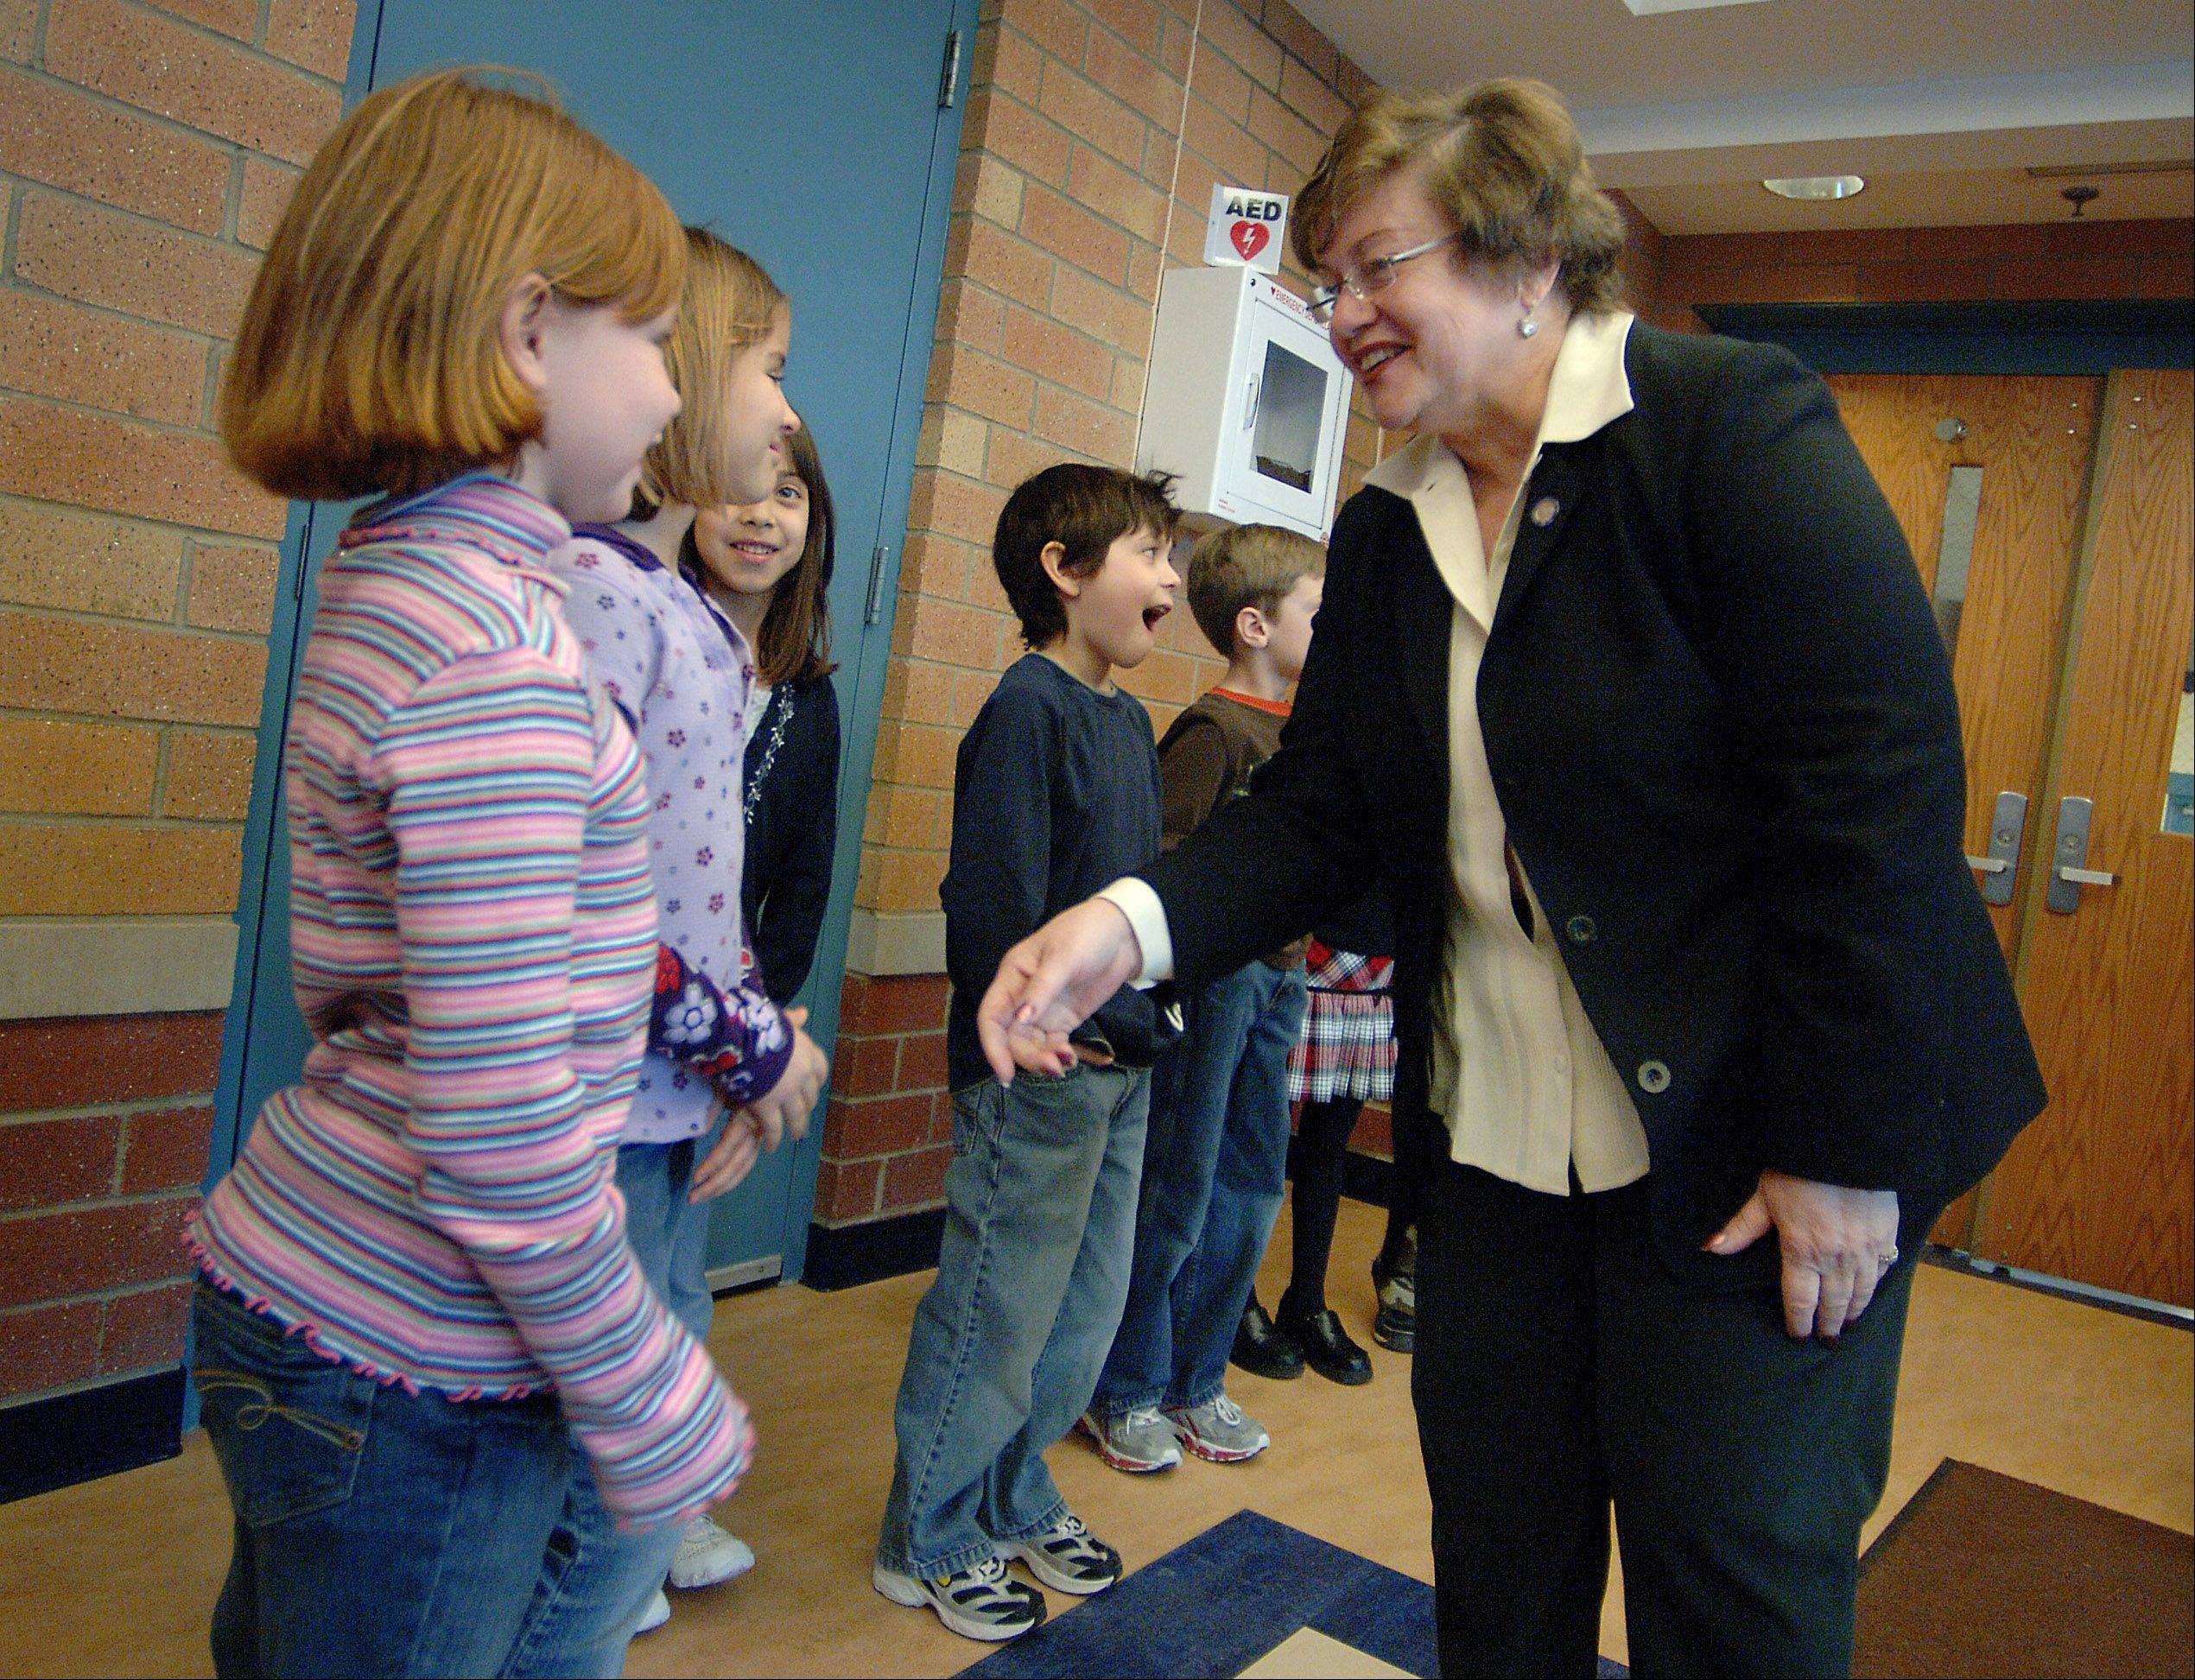 State Rep. JoAnn Osmond, here visiting with students and officials at Hillcrest School in Antioch, won't seek re-election next year.